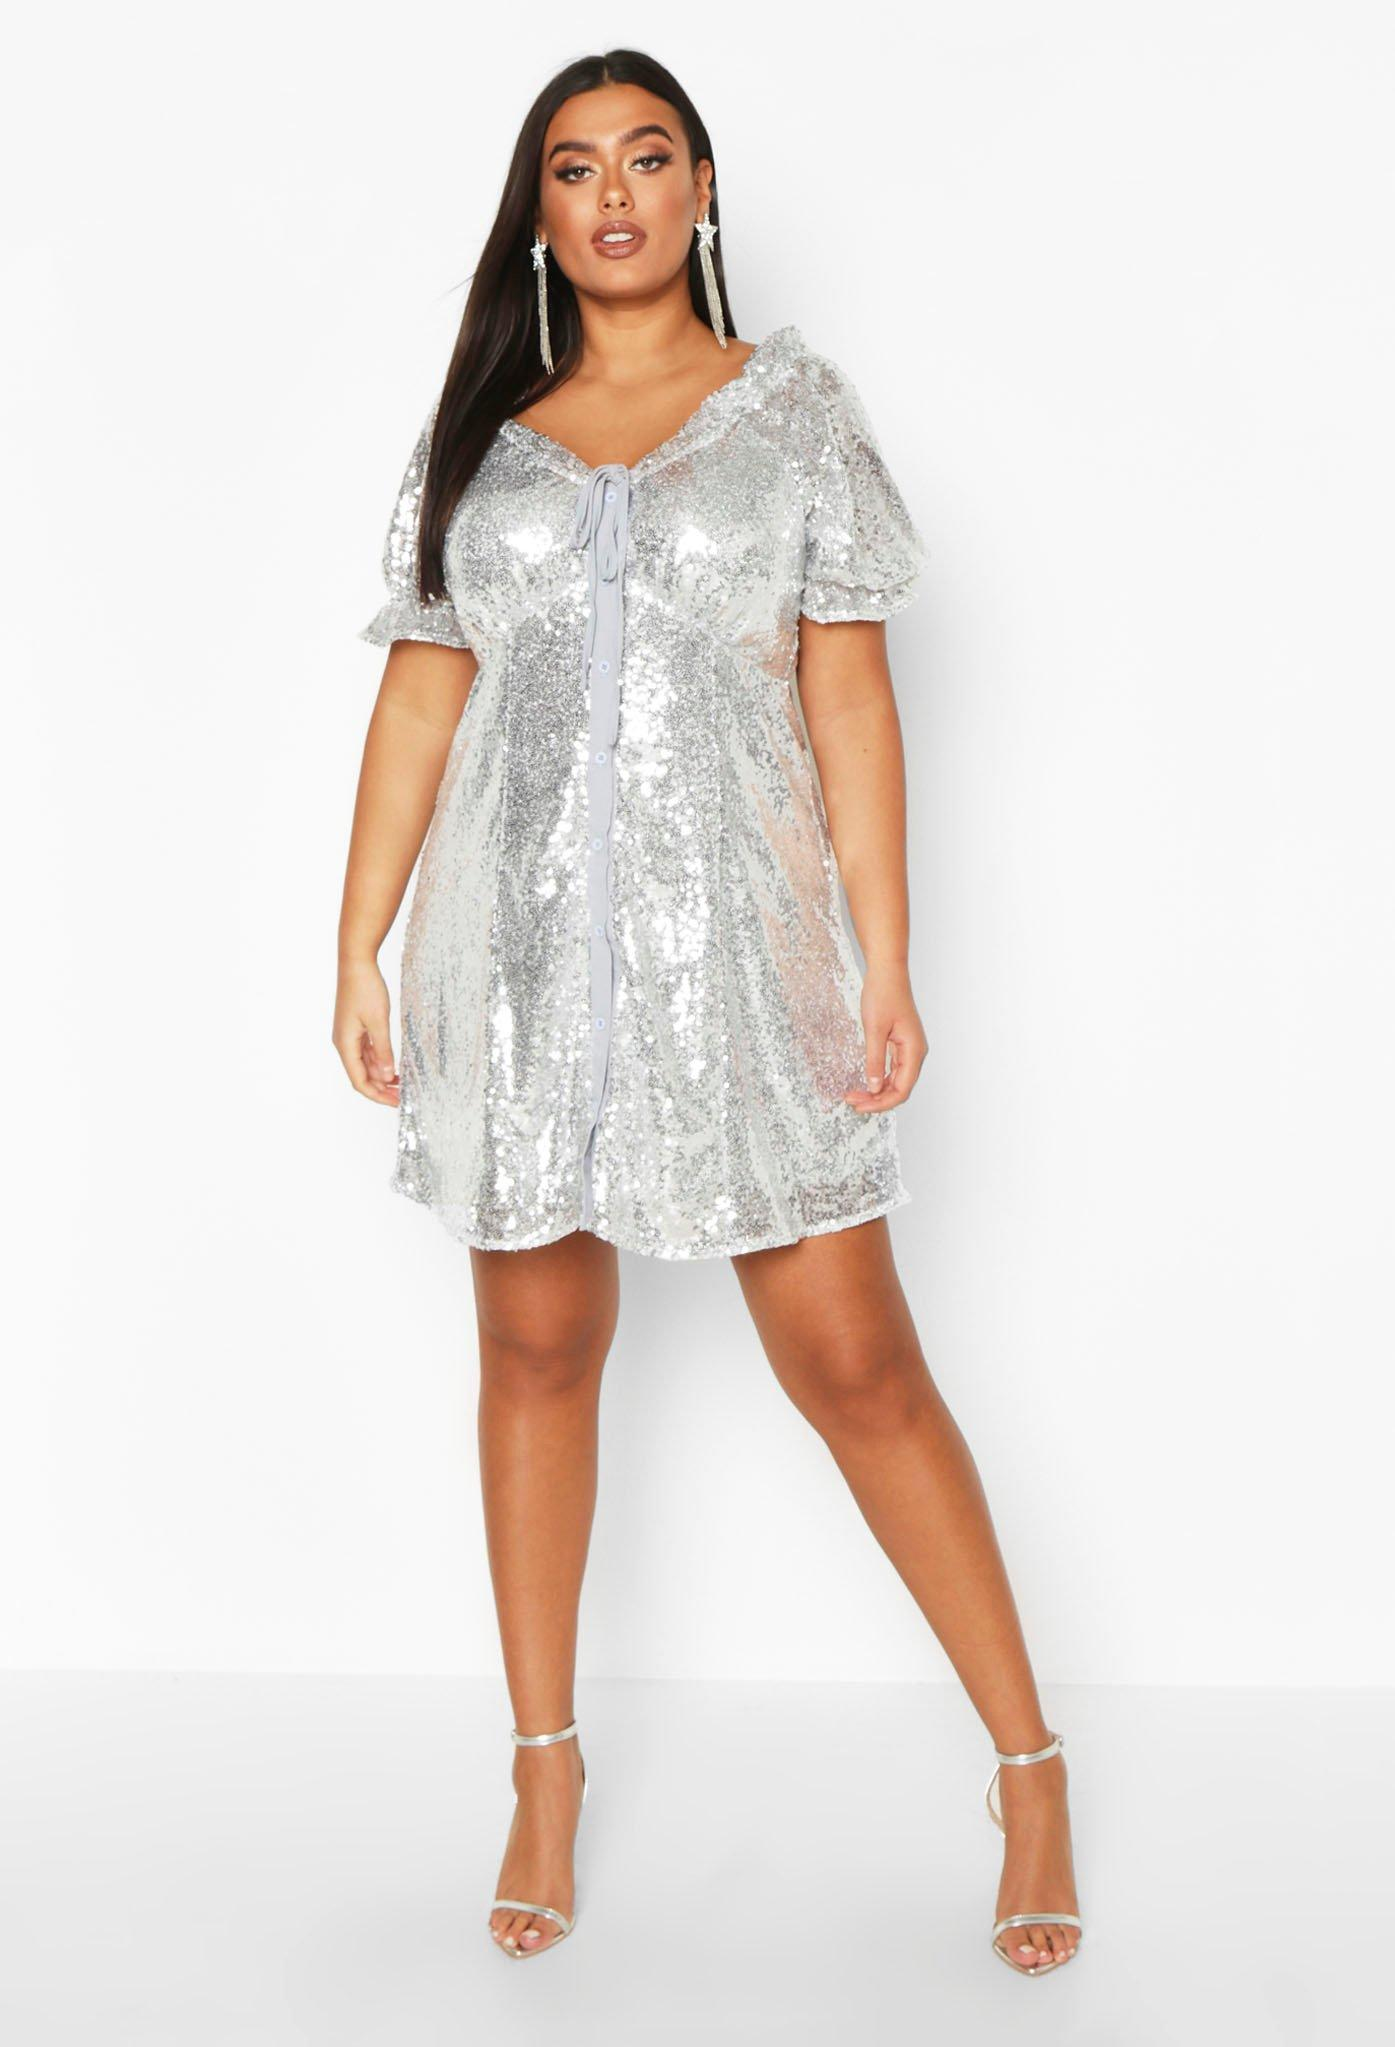 60s 70s Plus Size Dresses, Clothing, Costumes Womens Plus Sequin Puff Sleeve Skater Dress - grey - 16 $30.00 AT vintagedancer.com